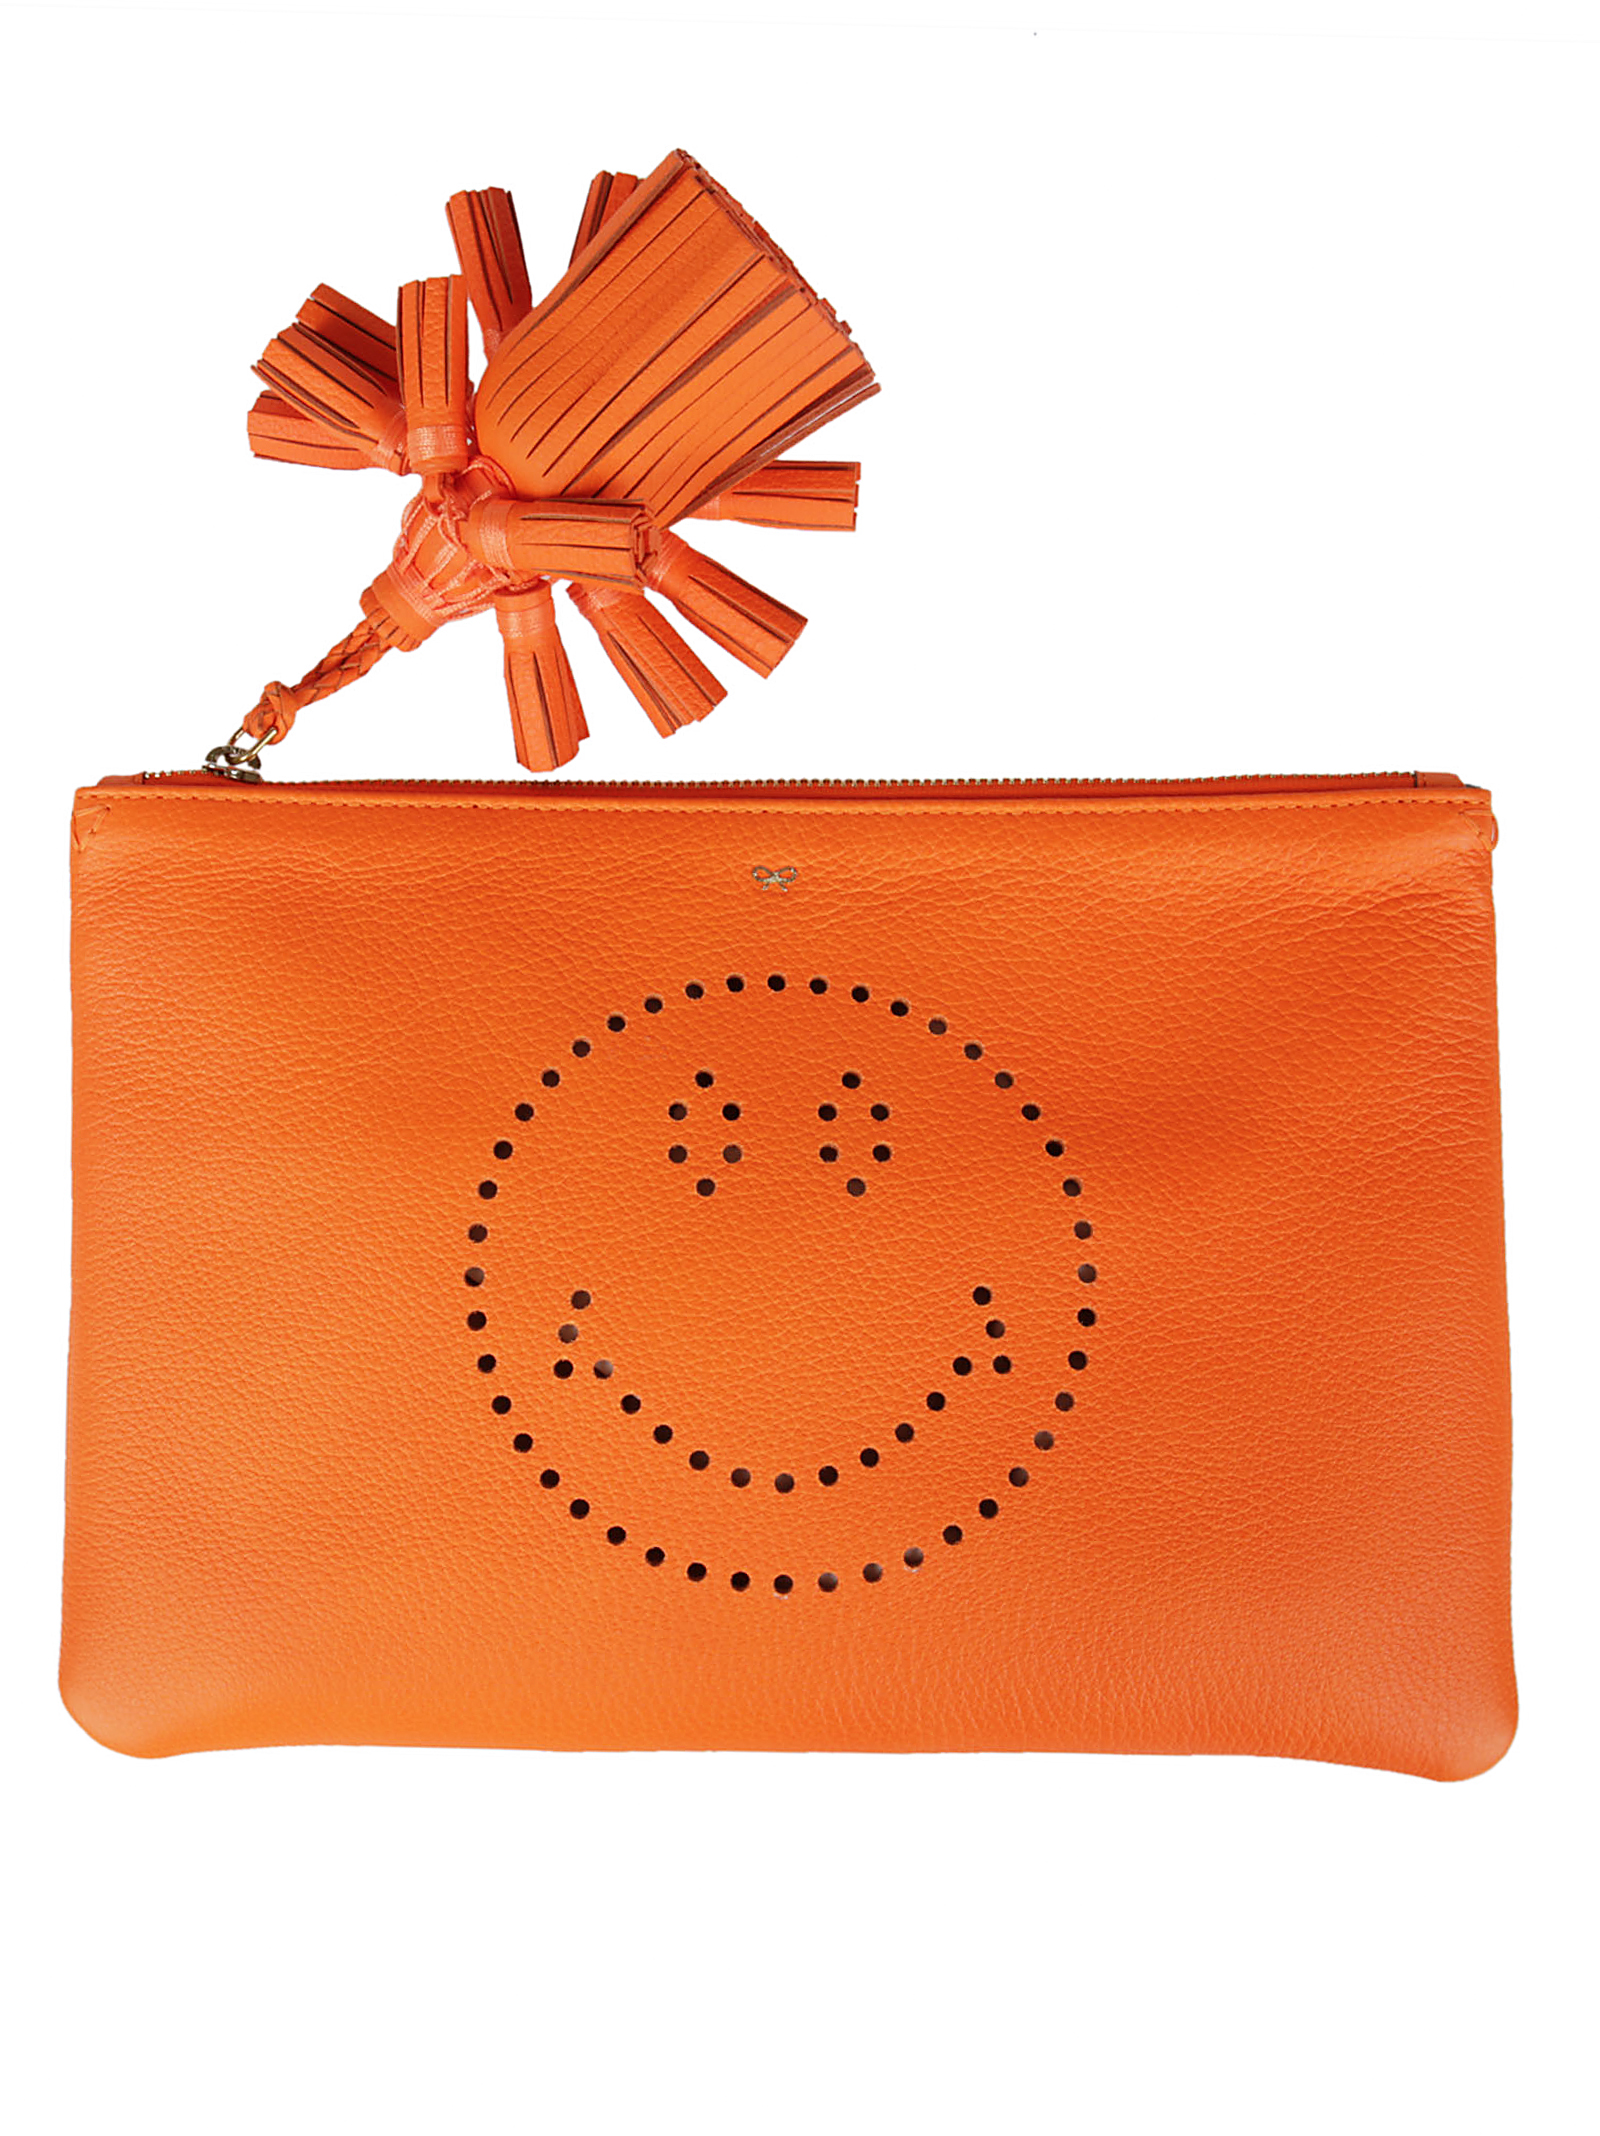 Anya Hindmach Anya Hindmarch Smiley Clutch